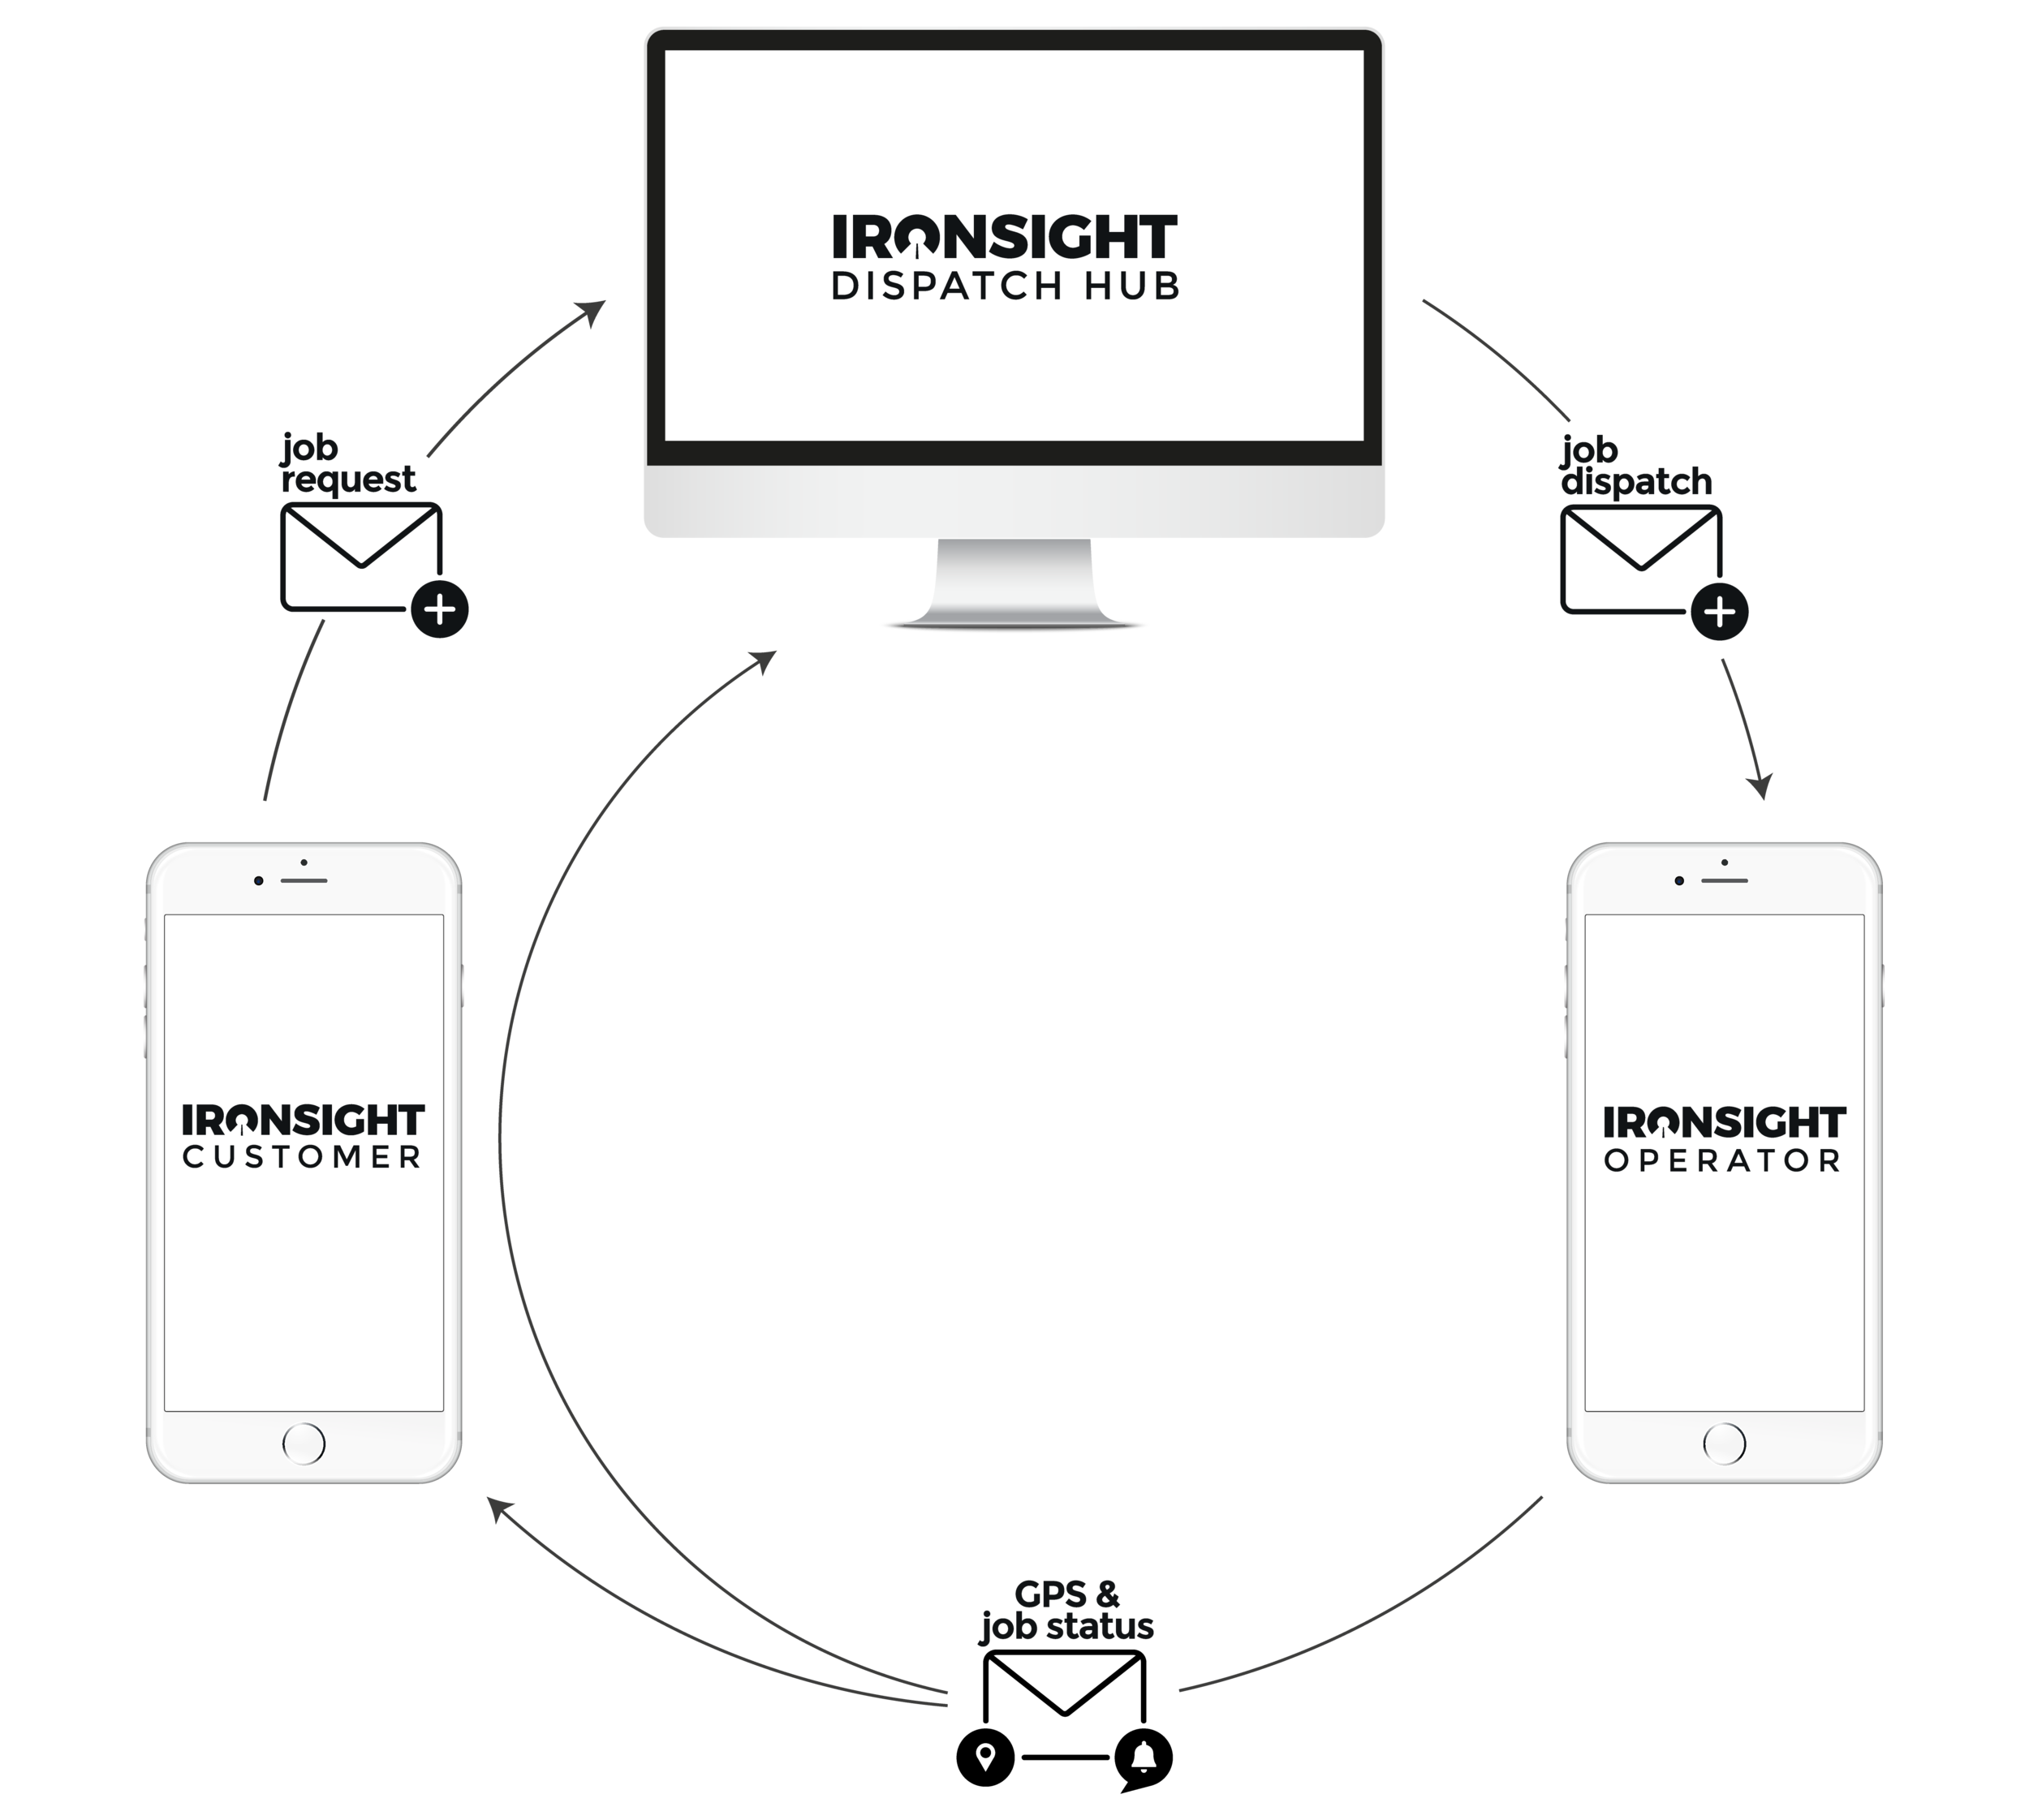 The three IronSight apps automatically communicate to ensure all parties are kept in-the-loop throughout a job's life cycle. If your operation has smartphones and a computer, there are absolutely no hardware purchases or installations required. Continue reading below for an introduction to each platform.